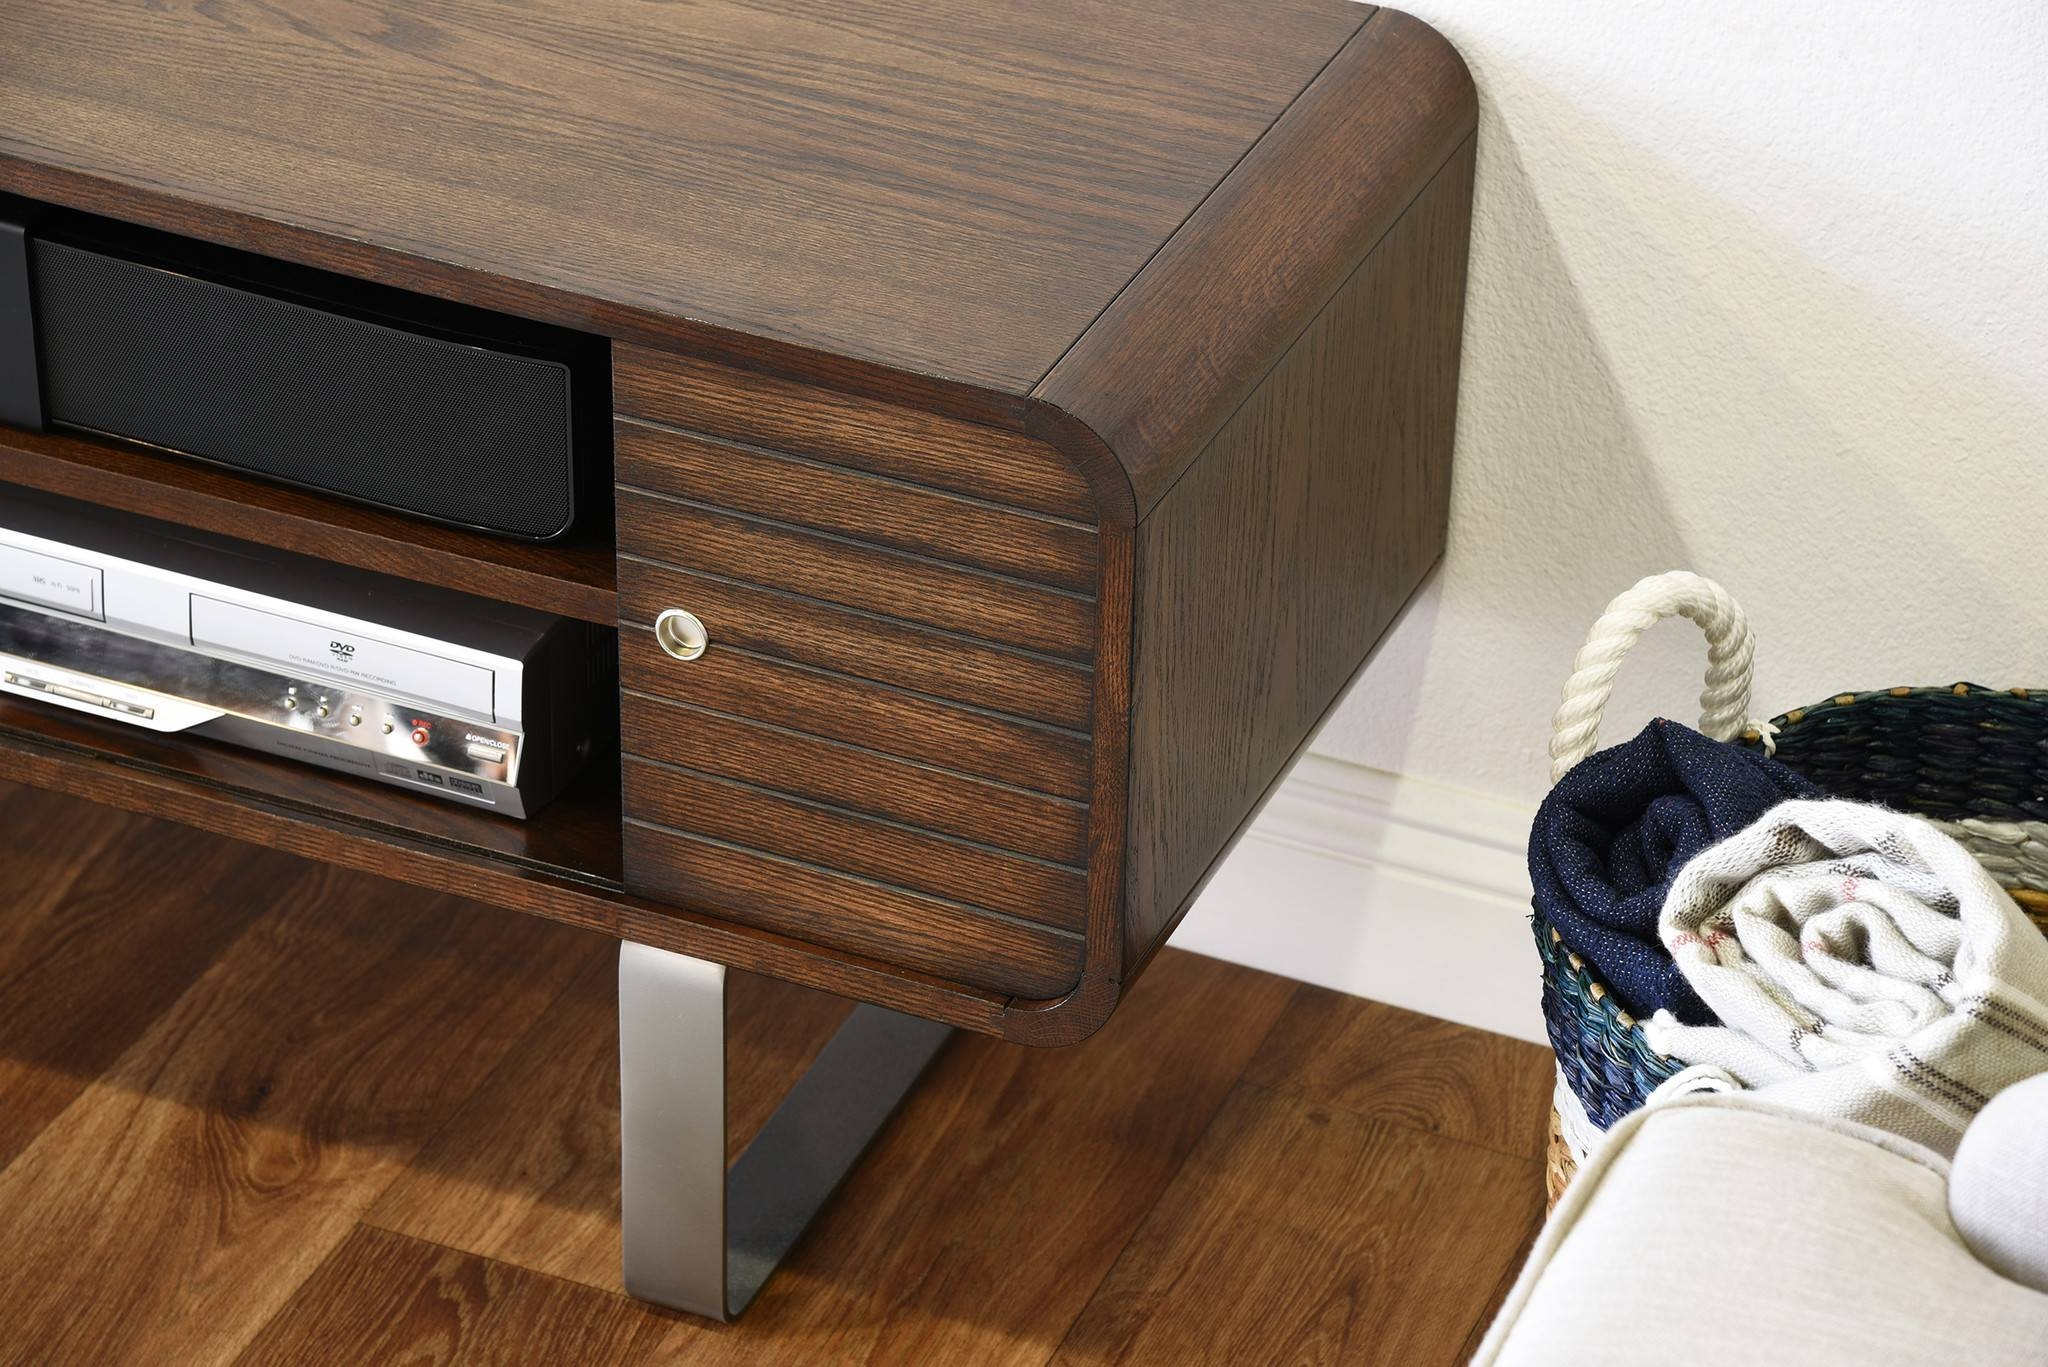 Tv Stand With Rounded Corners - Round Designs regarding Tv Stands With Rounded Corners (Image 12 of 15)